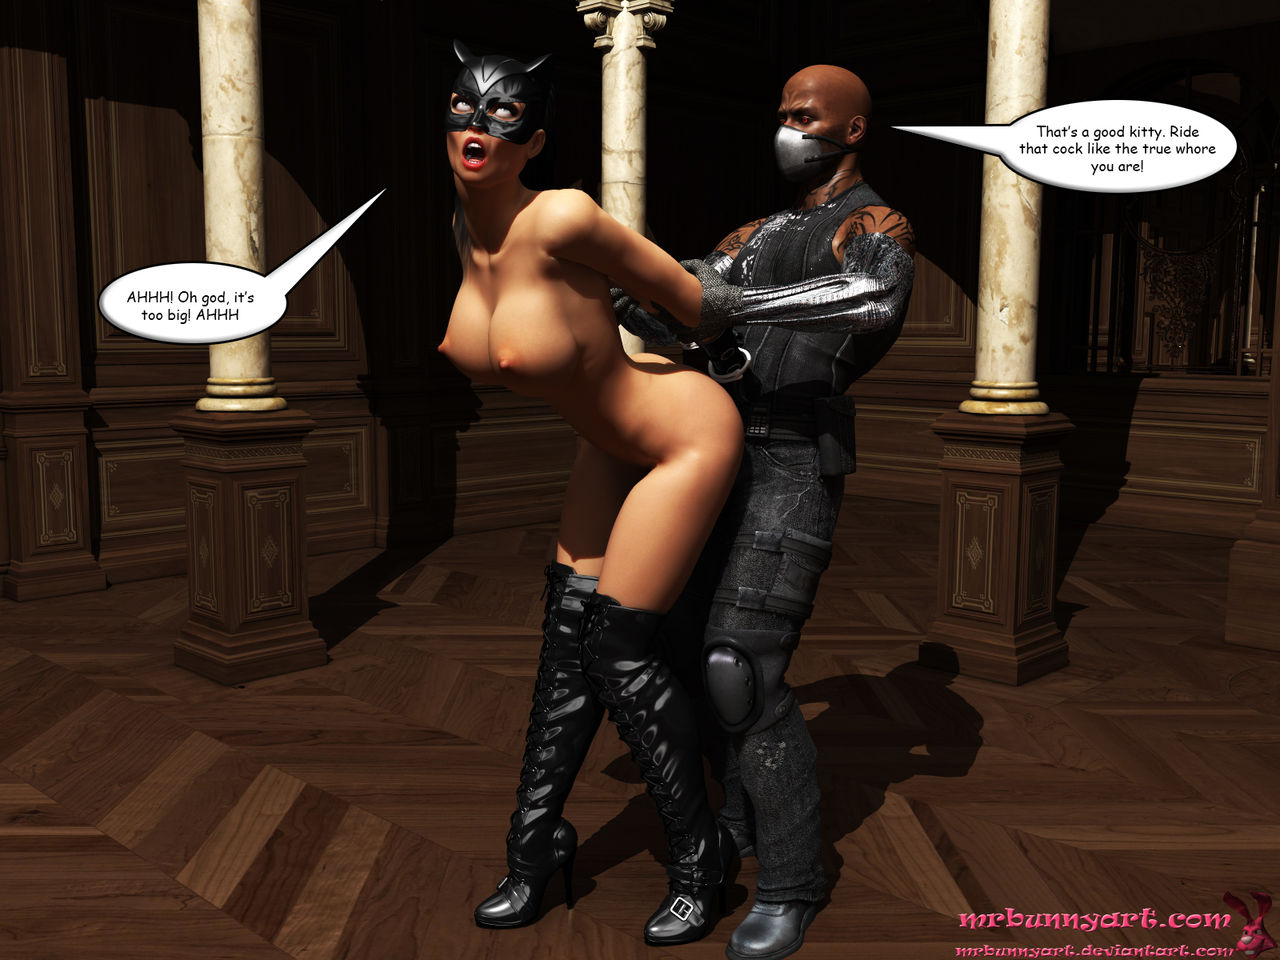 bdsm-and-bat-play-angelina-jolie-porno-pissing